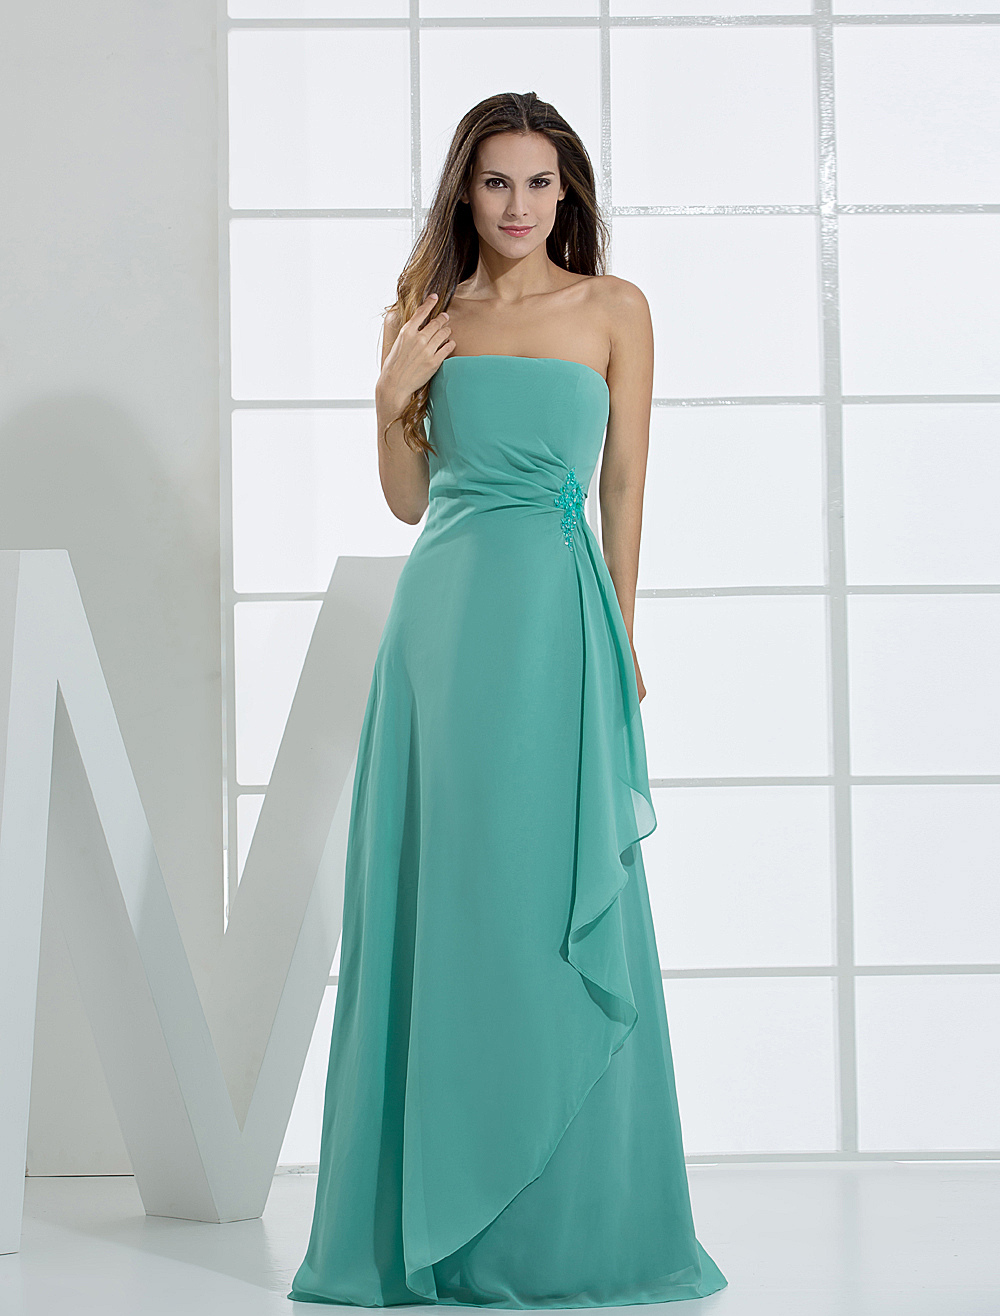 Romantic A-line Strapless Floor Length Chiffon Bridesmaid Dress